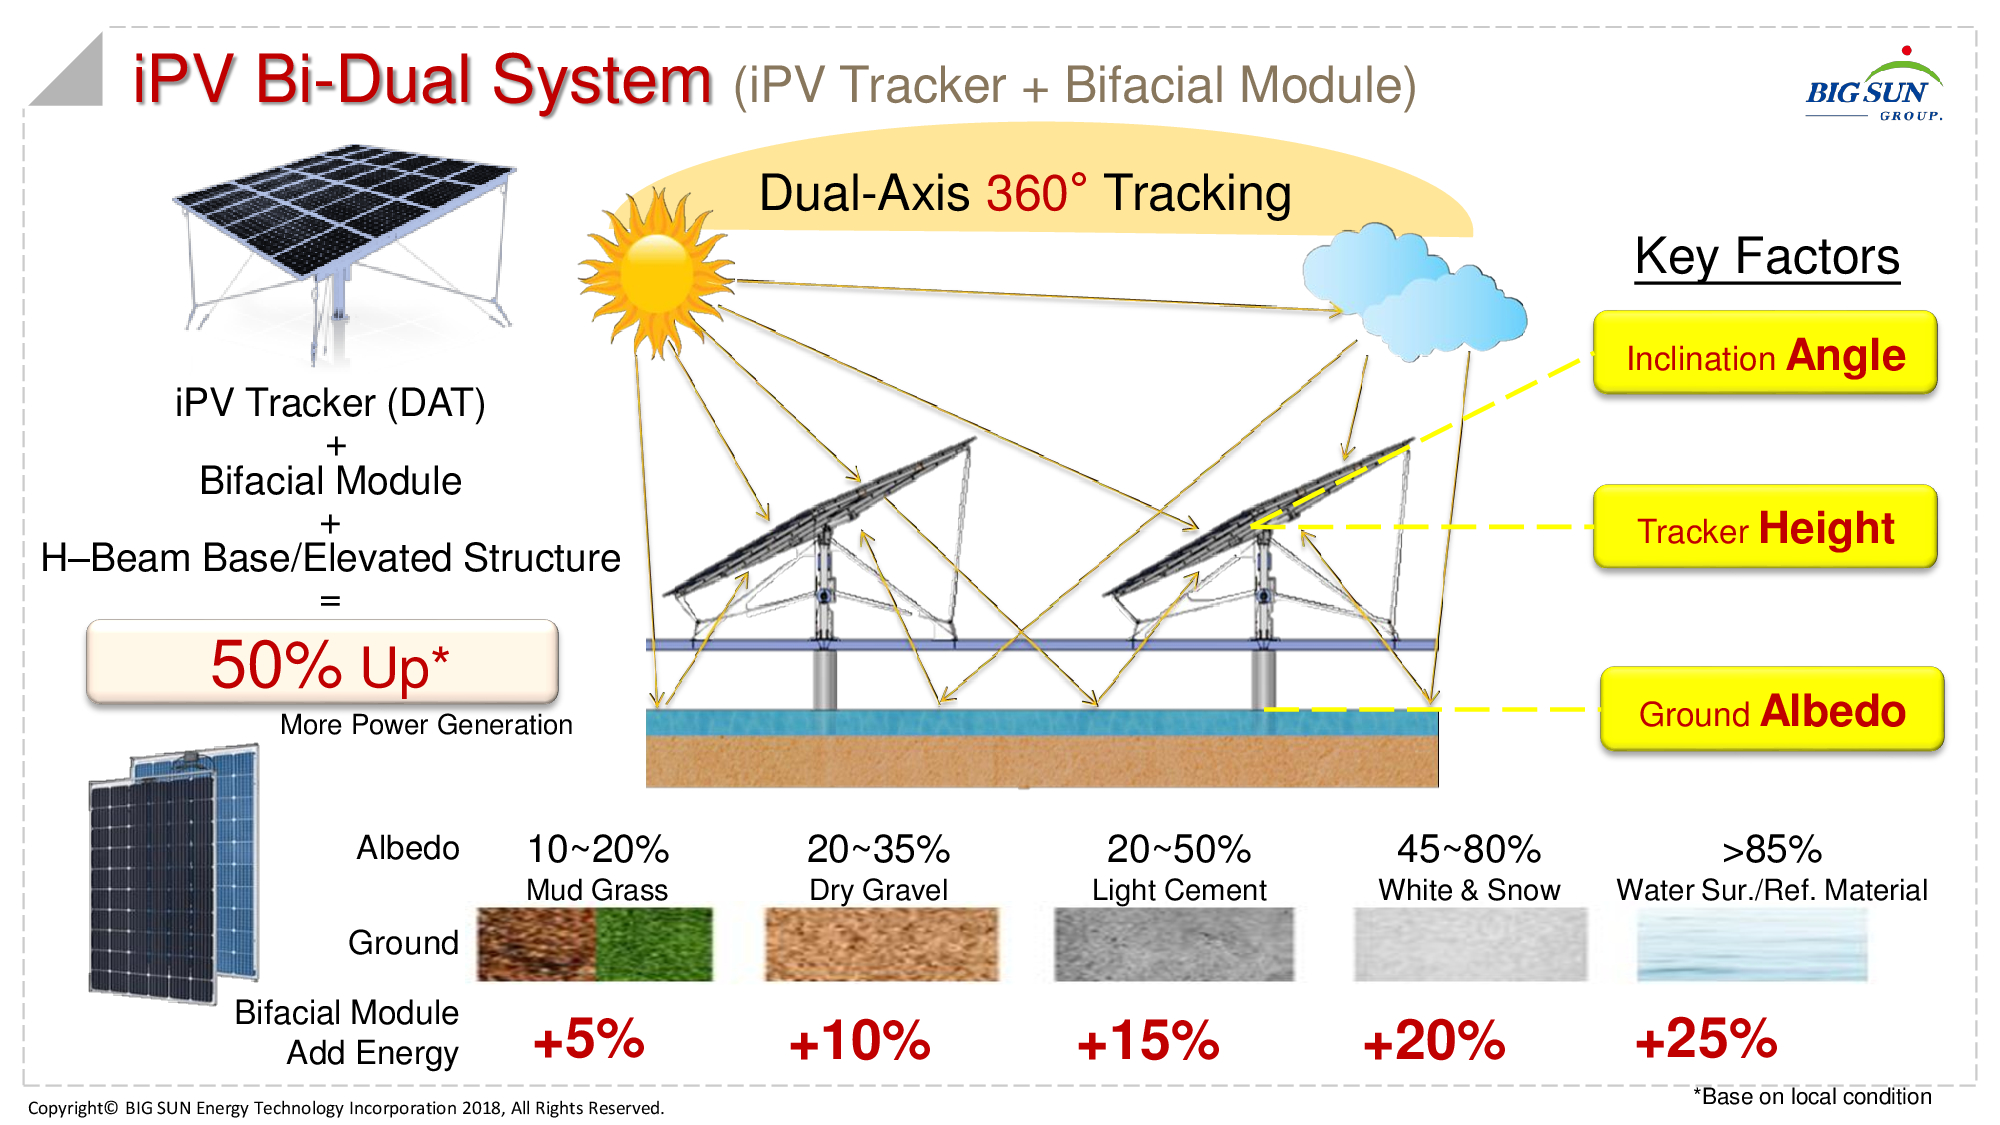 BIG SUN Energy has created a new version of its dual axis iPV tracker for use with bifacial modules or aquatic applications such as fishery ponds, reservoirs and floating solar (FPV) systems. Image: BIG SUN